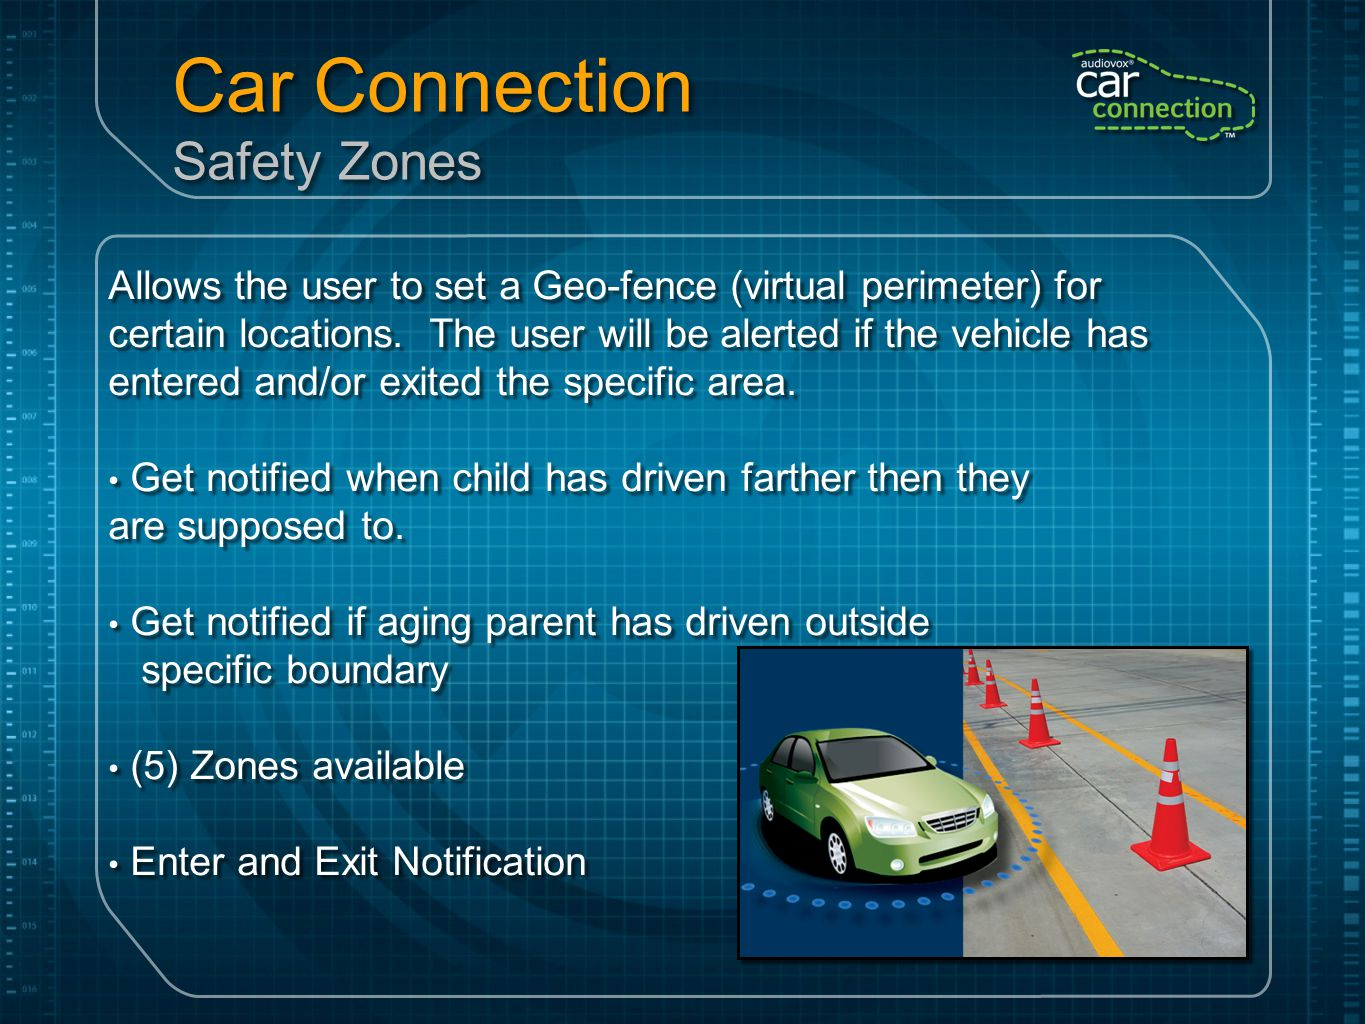 Car Connection Safety Zones